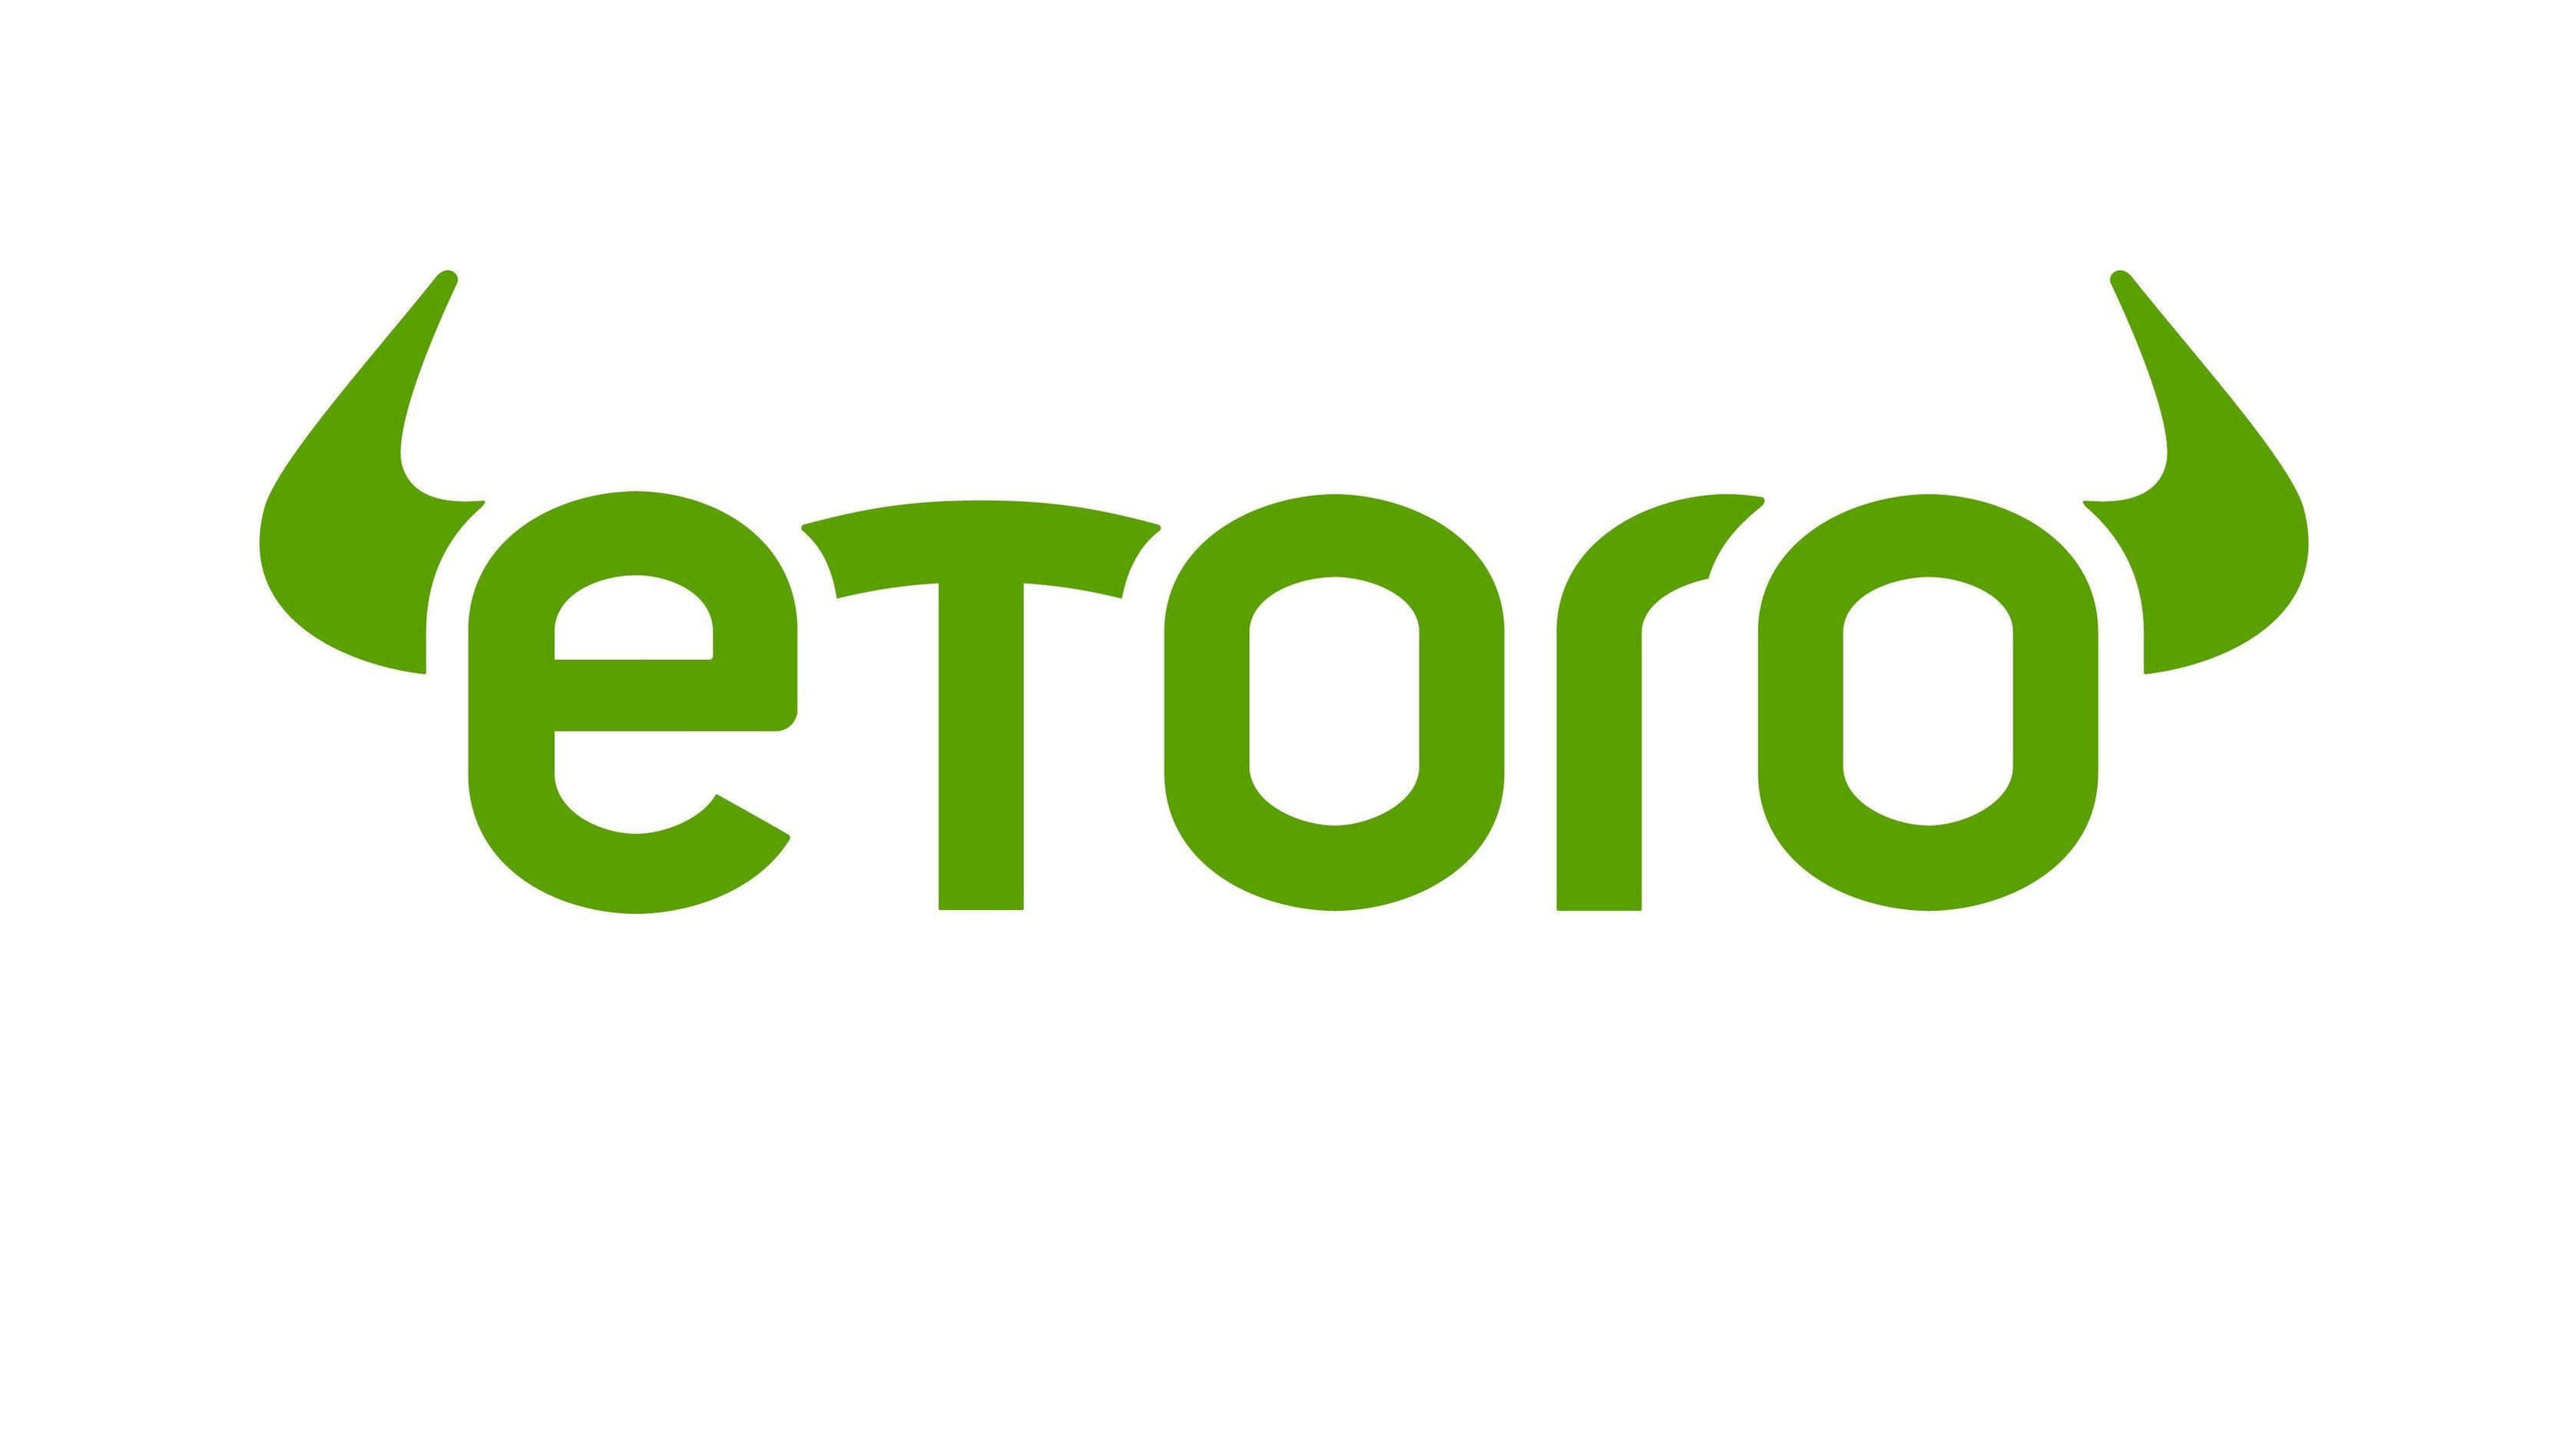 Etoro is one of the best bitcoin investment site